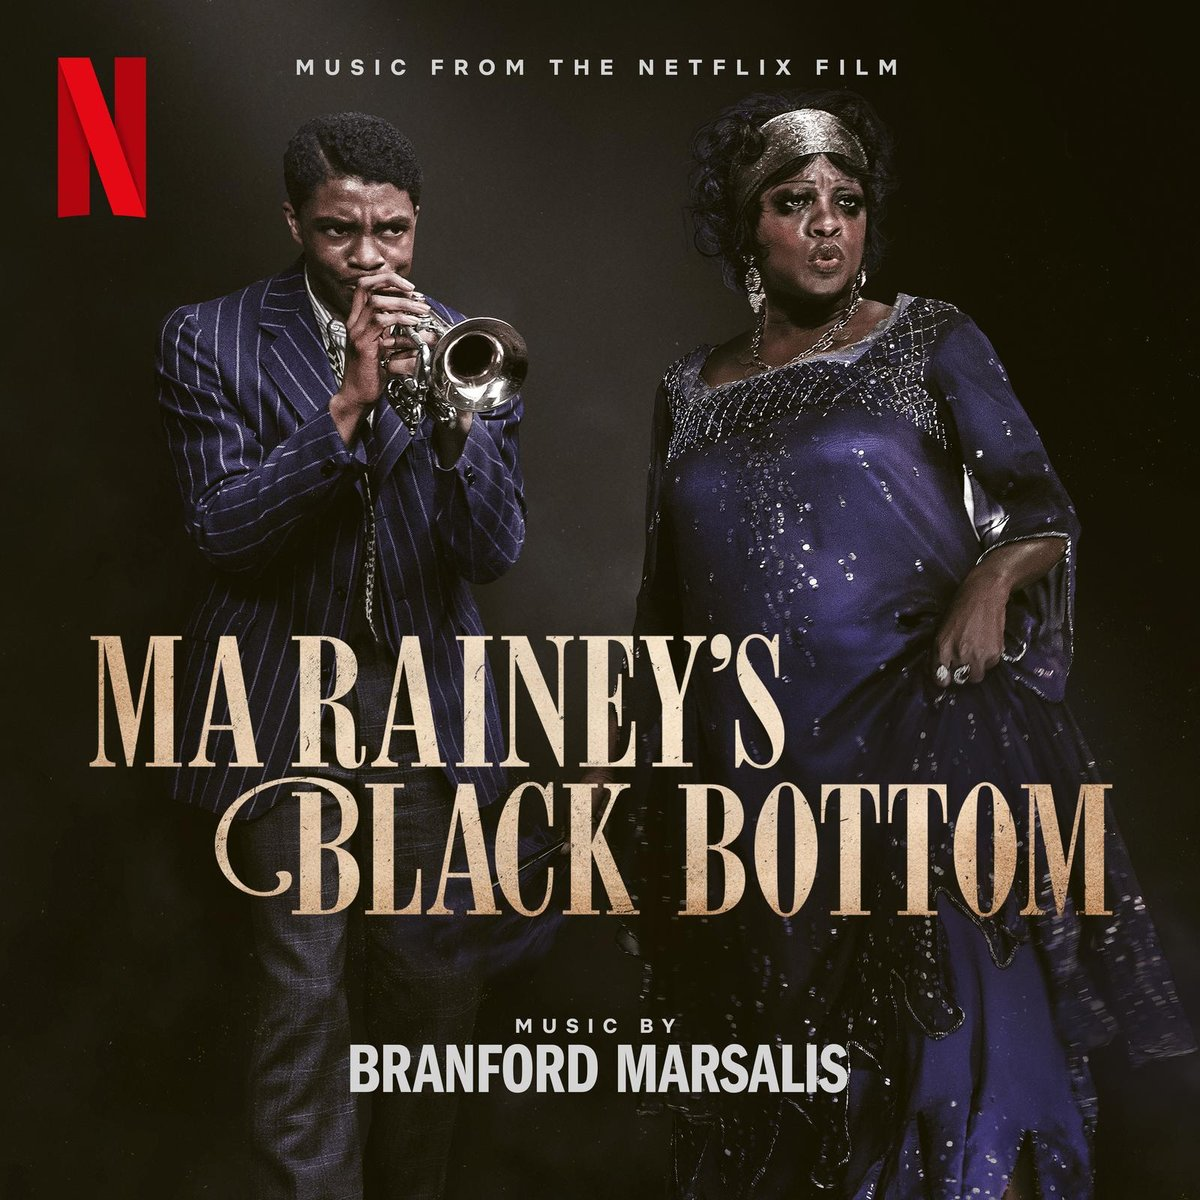 MARSALIS BRANFORD – Ma Rainey's Black Bottom